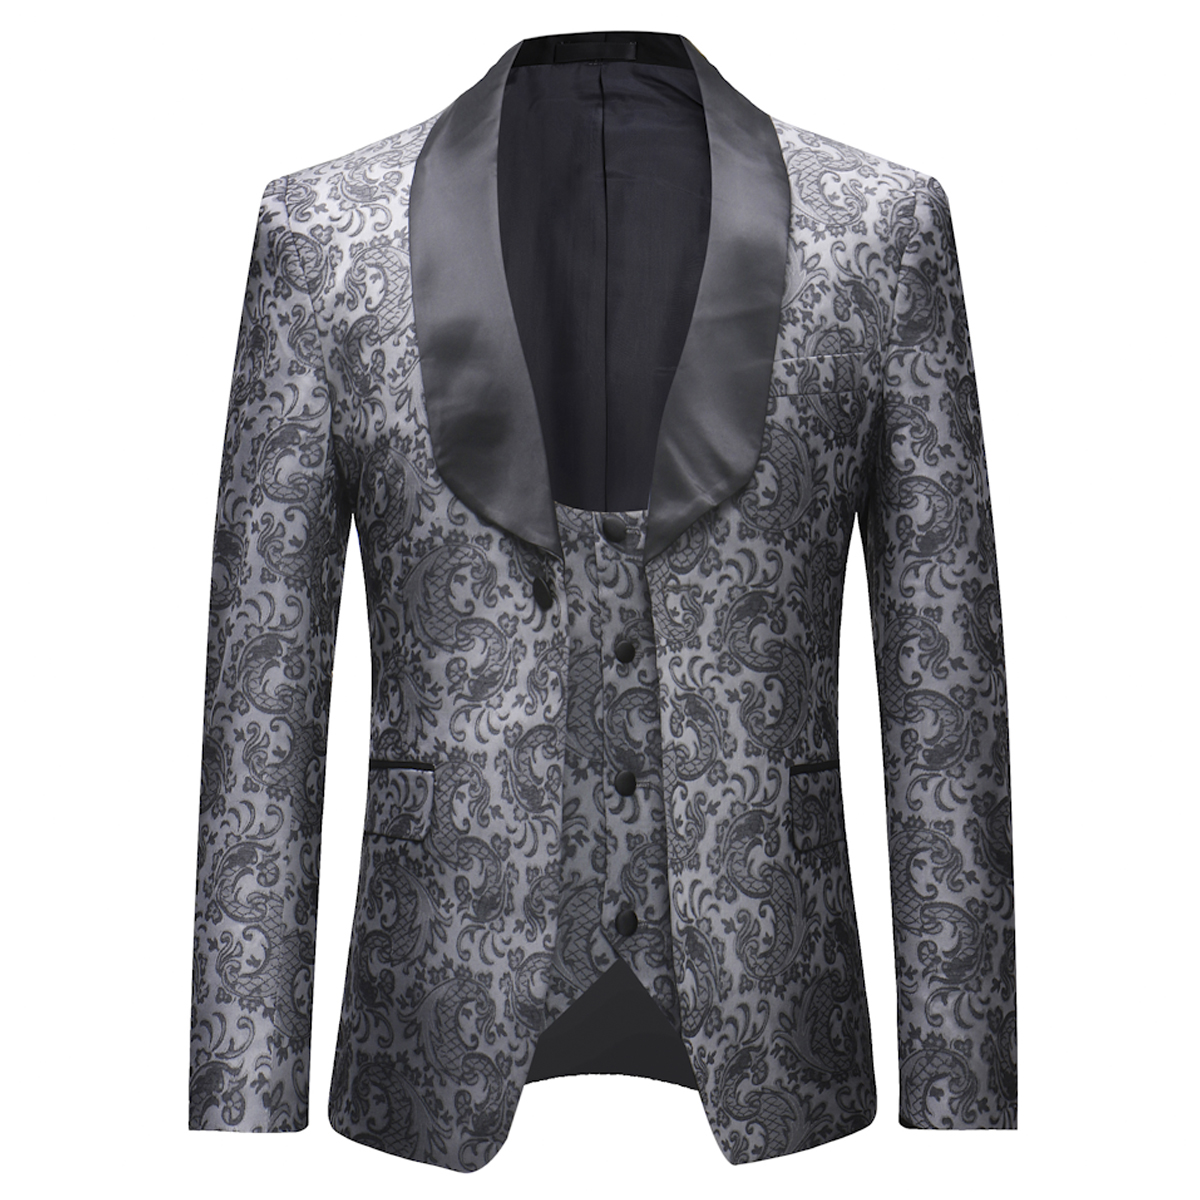 YUNCLOS Newest Mens 3 Piece Tuxedos Vintage Groomsmen Wedding Suit Complete Outfits(Jackets+Vest+Trousers) 1